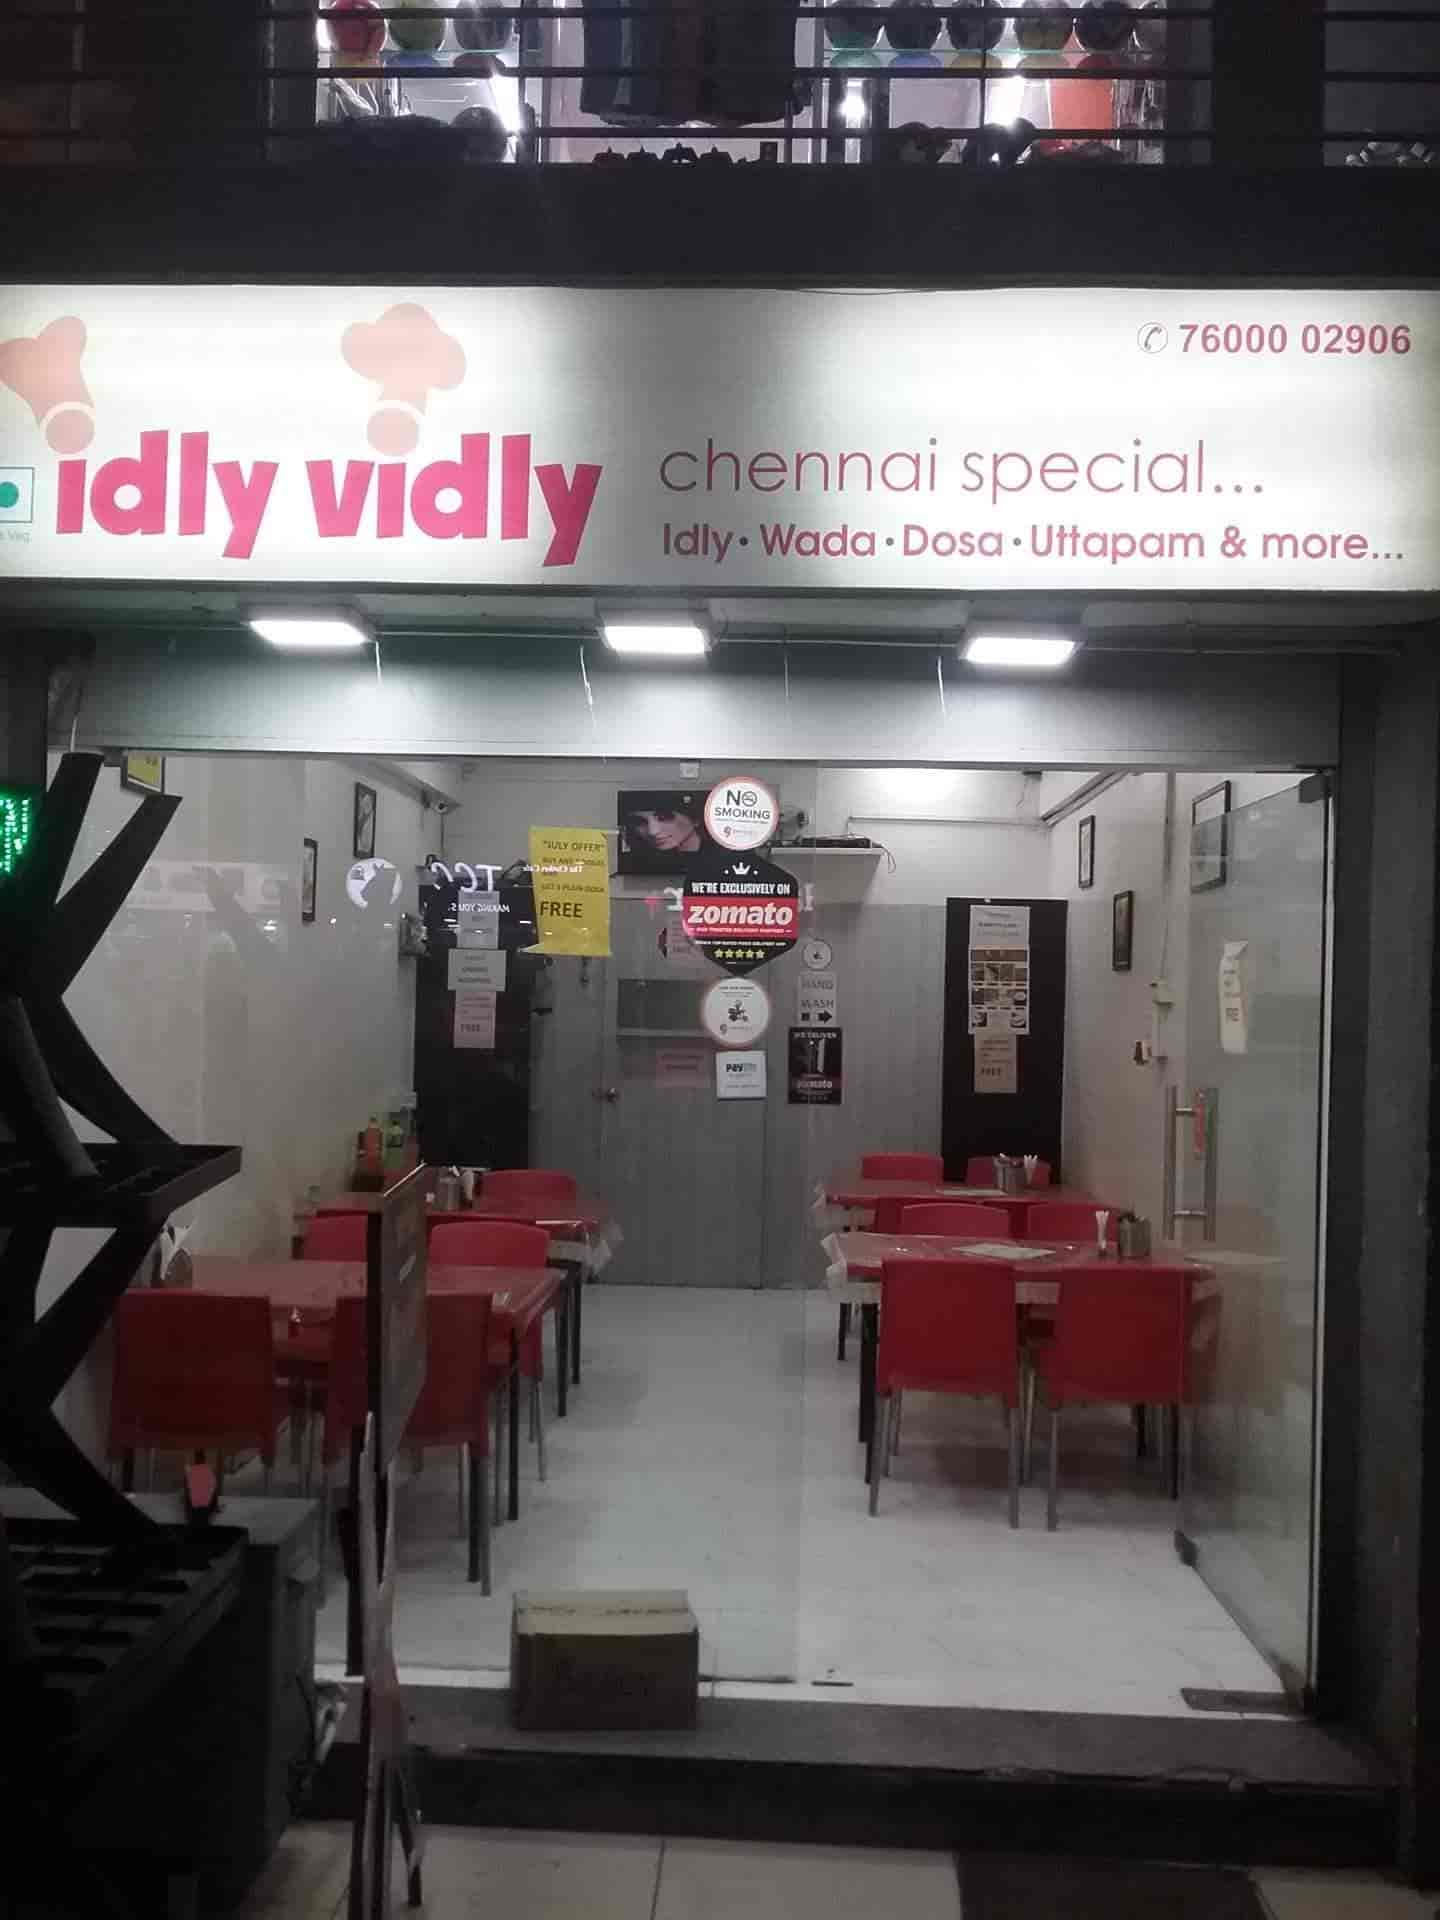 Idly Vidly Photos, South Bopal, Ahmedabad- Pictures & Images